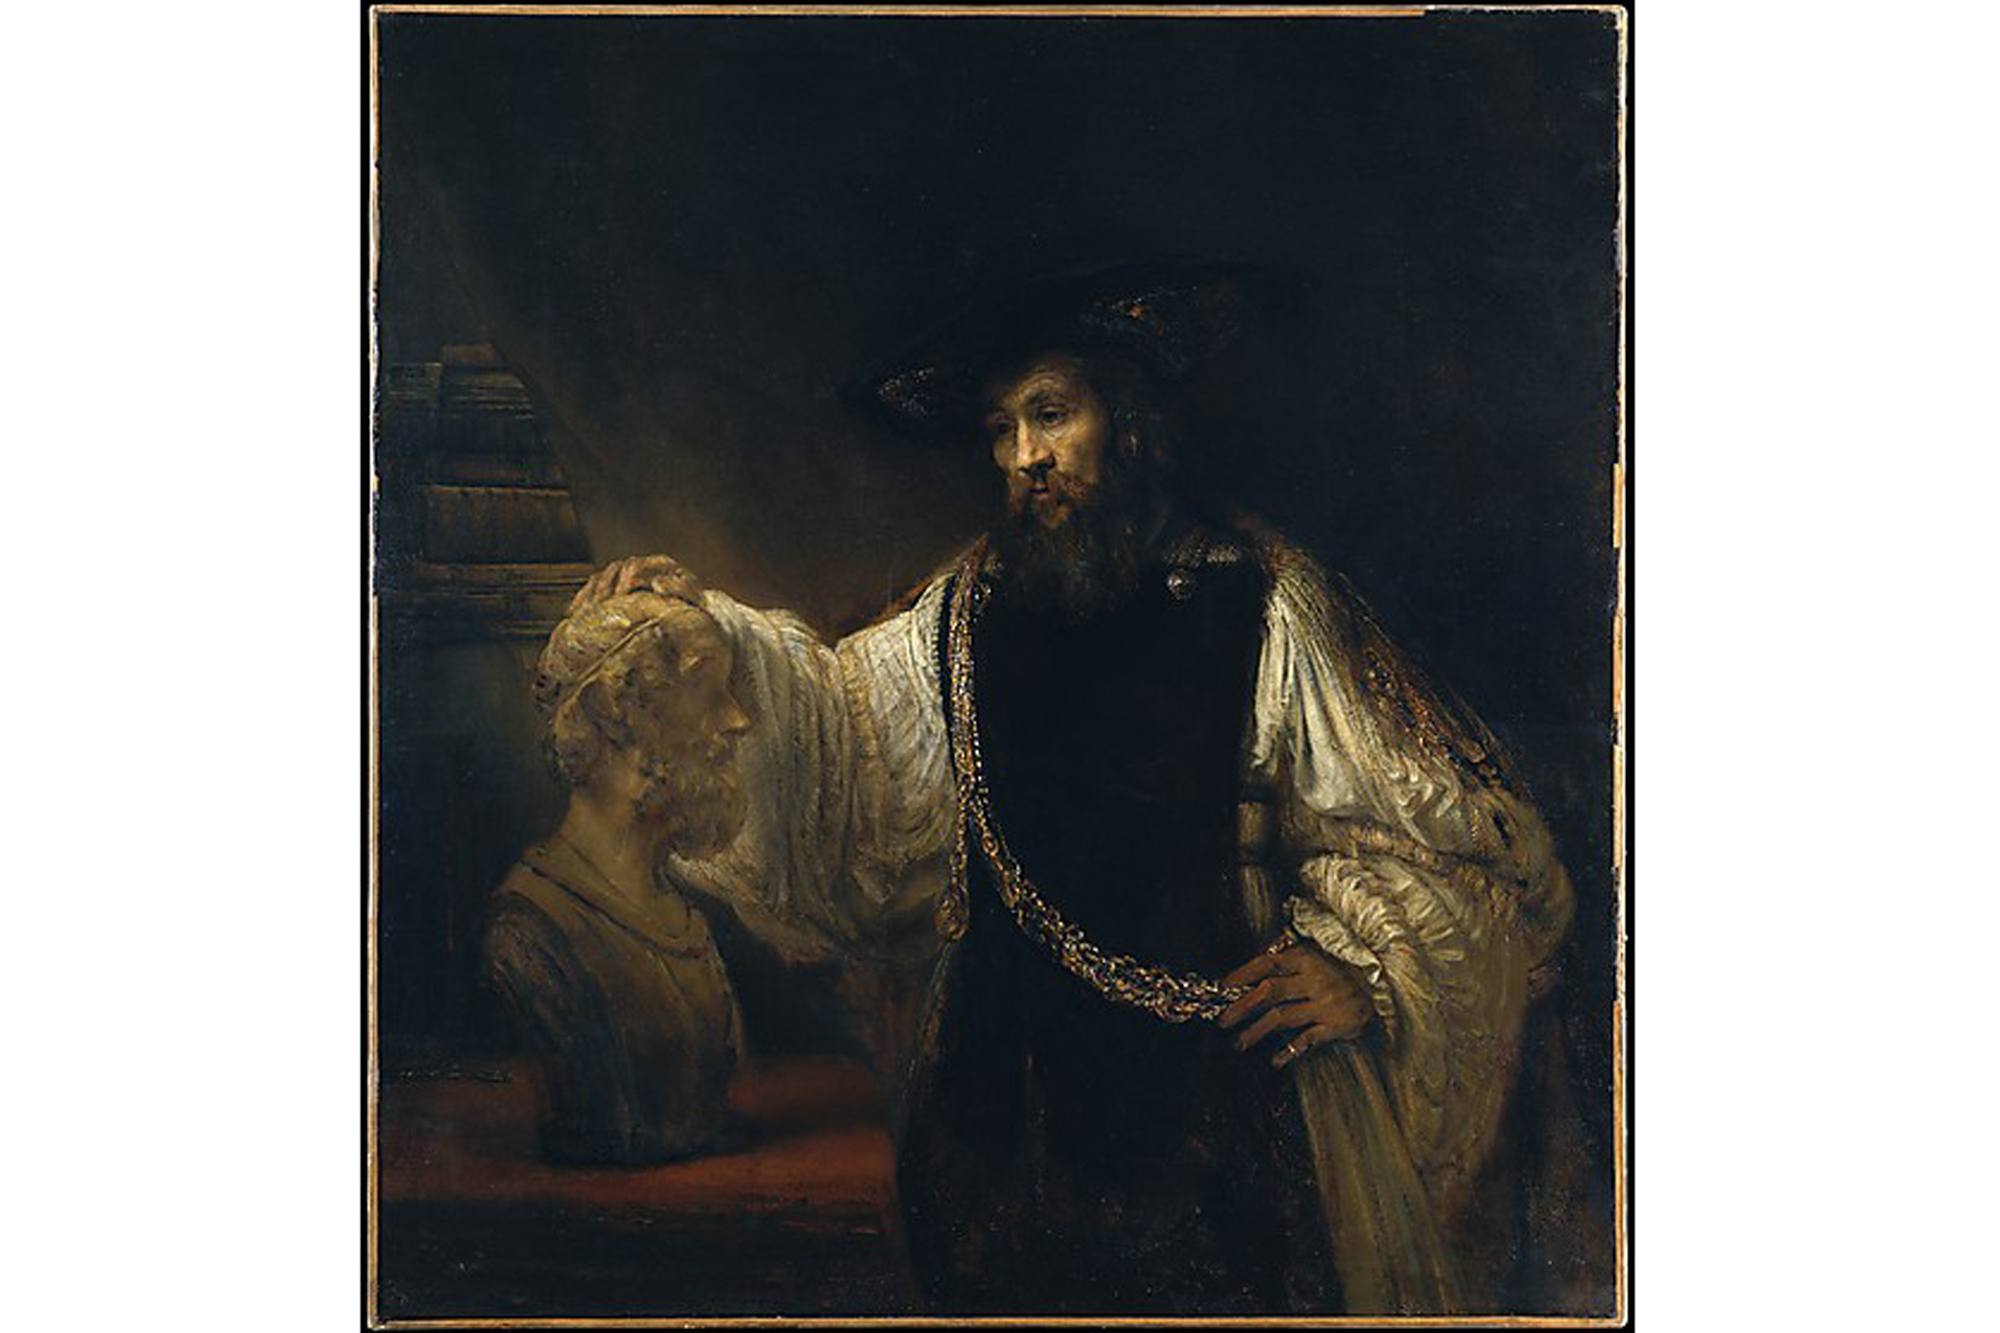 Rembrandt, Aristotle with a Bust of Homer (1653)